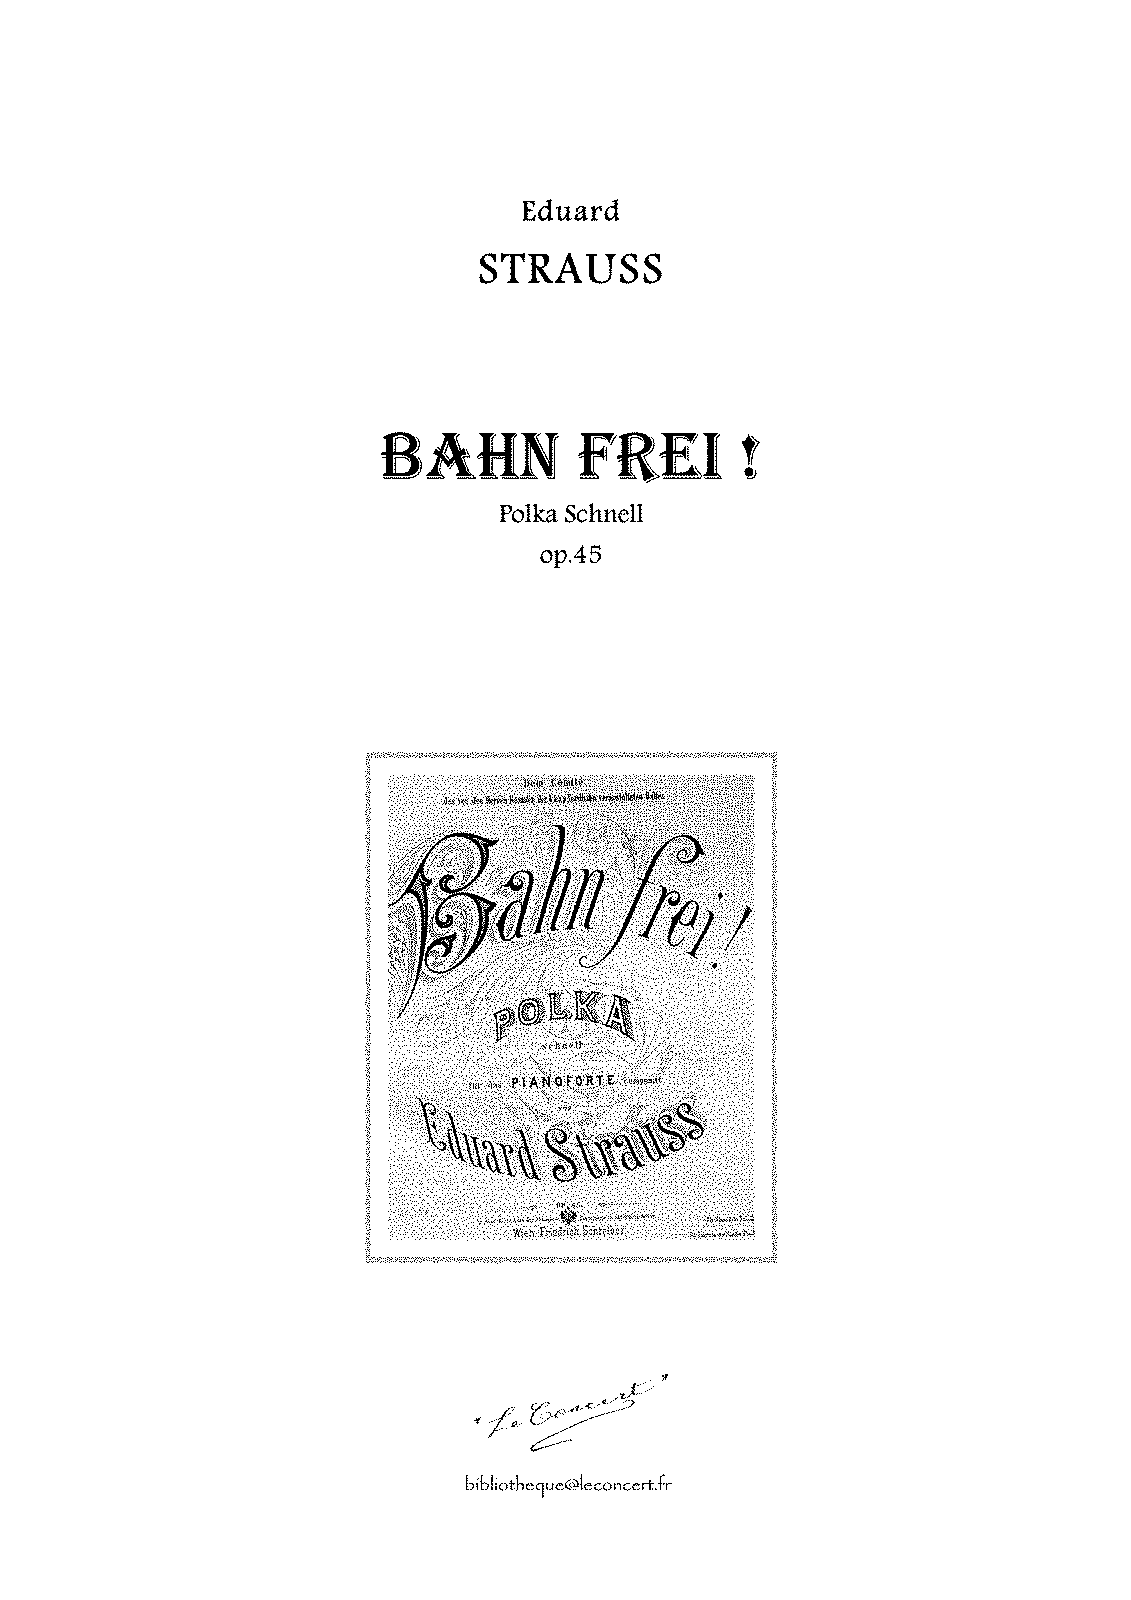 PMLP233329-1534-StraussE-BahnFrei-00-Score-Cover.pdf